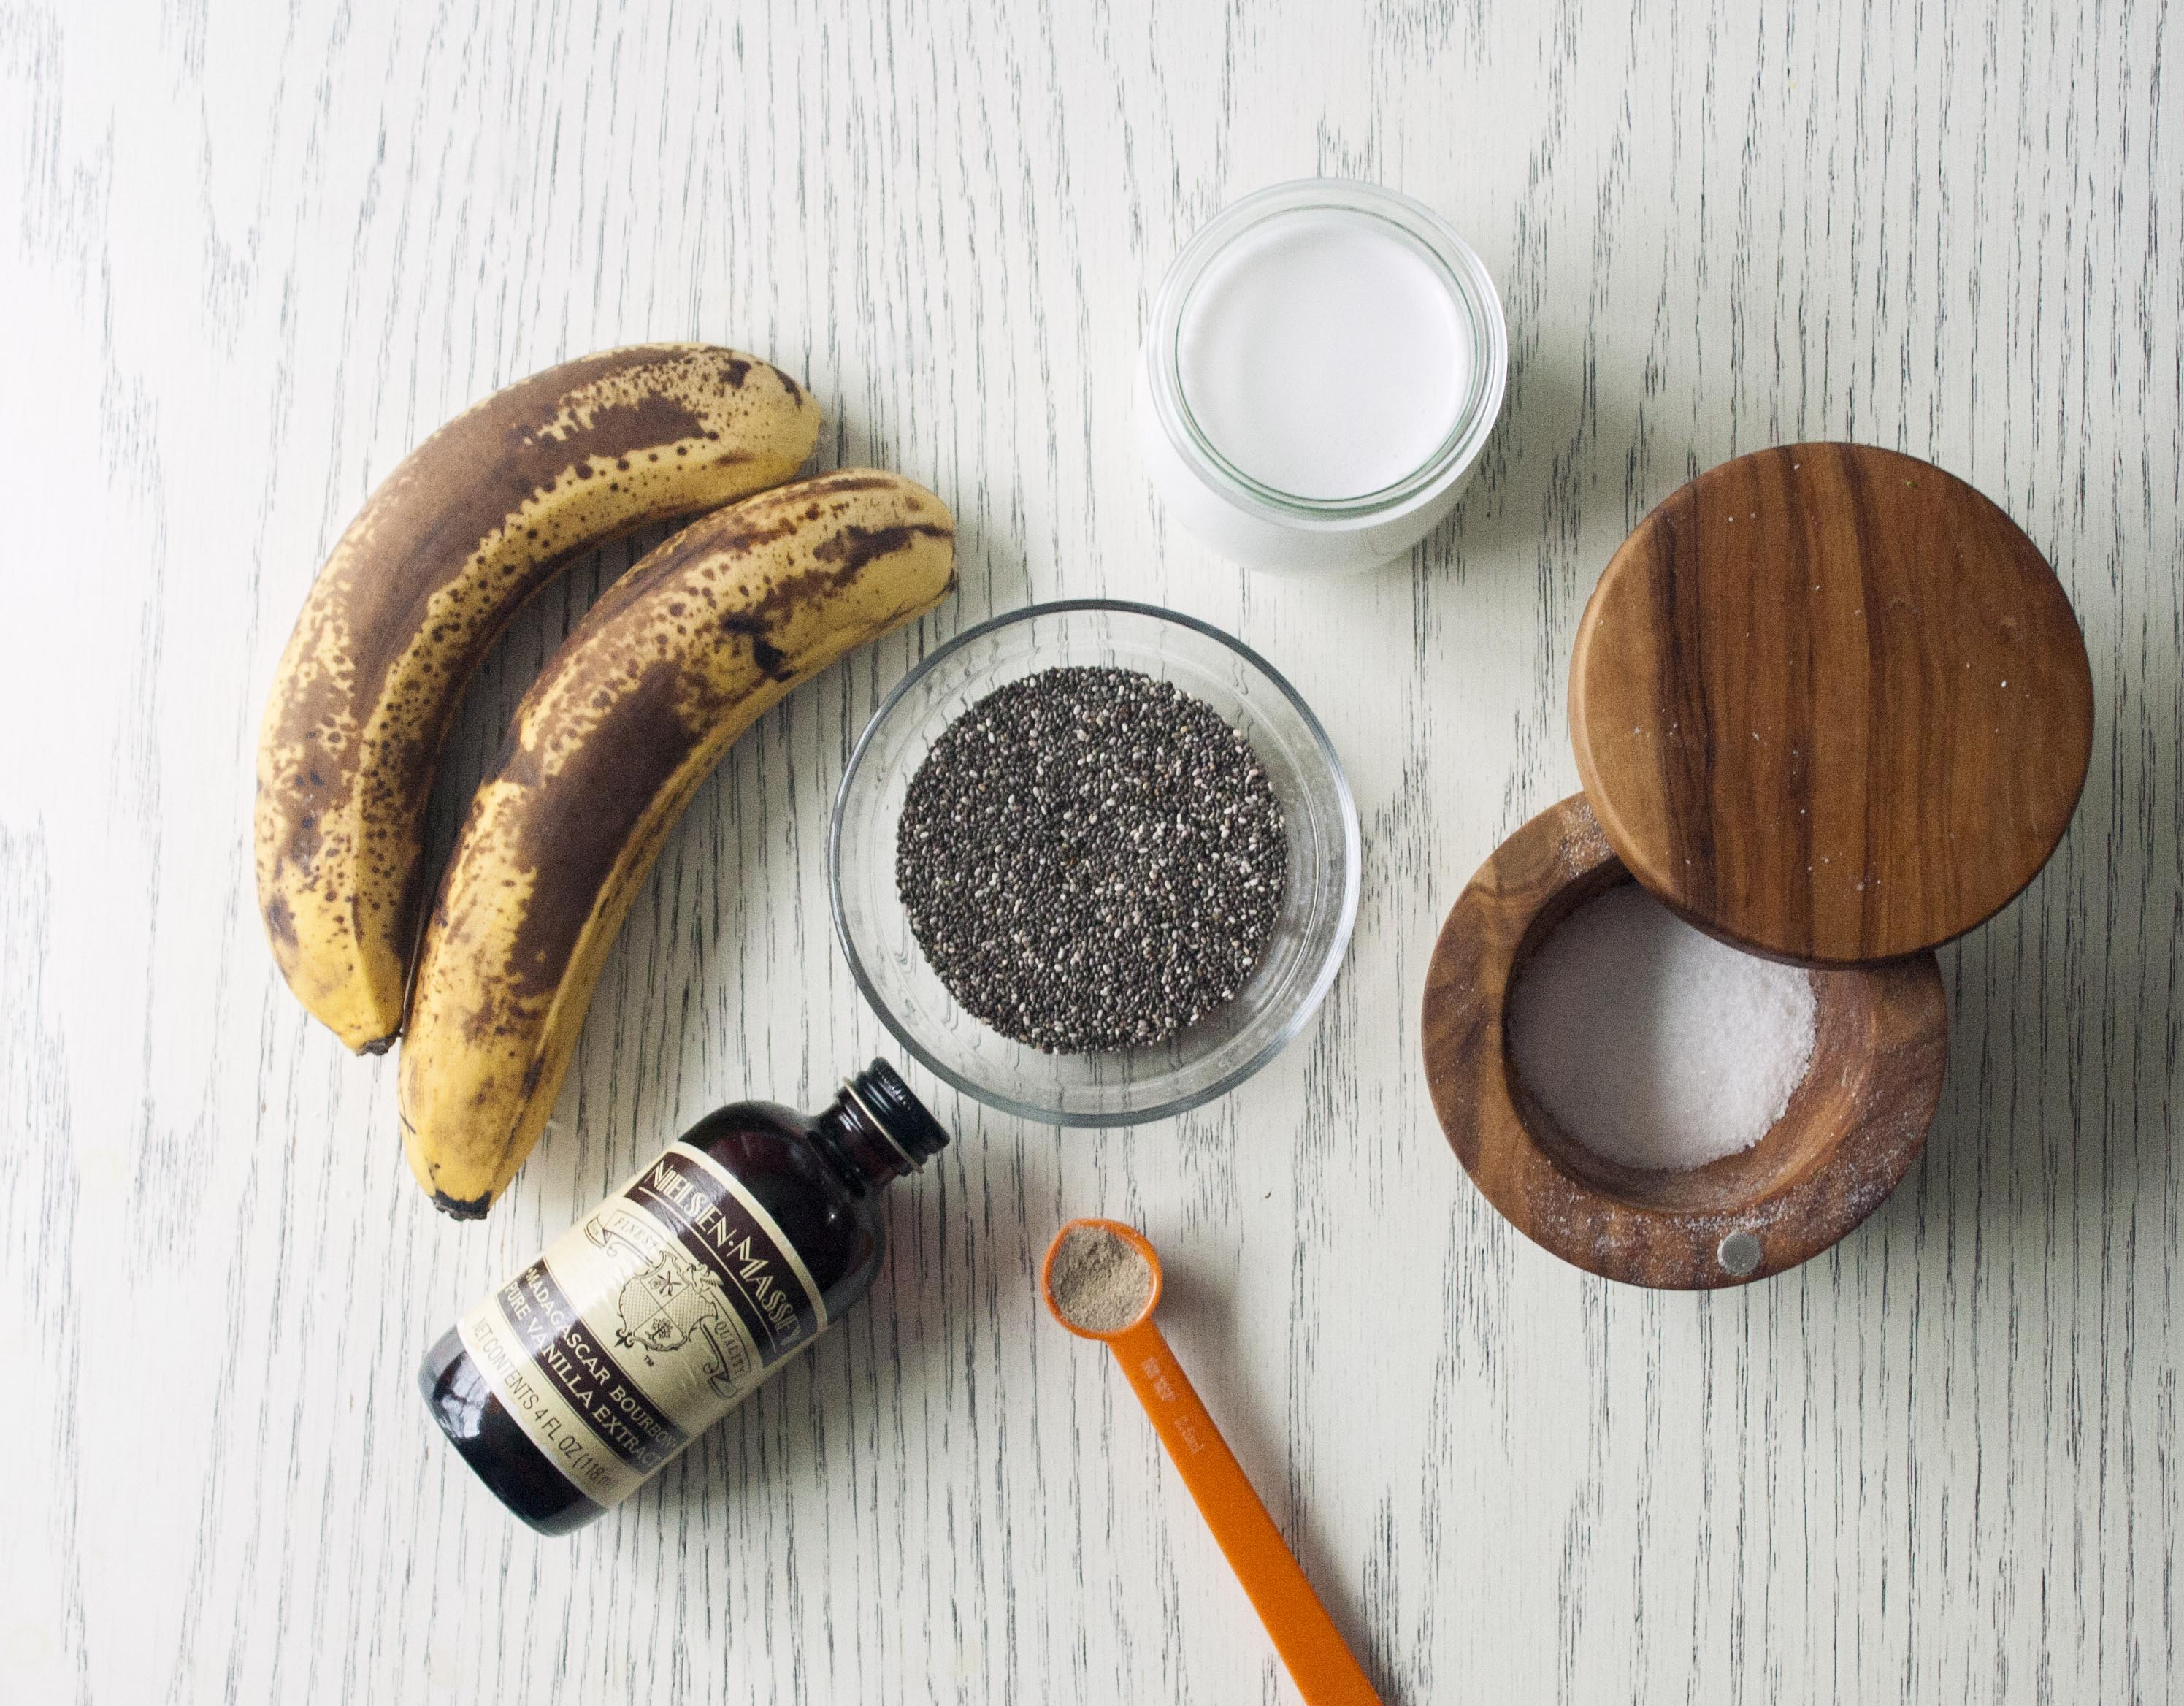 Ingredients for Banana Cardamom Chia Pudding. www.lifeaswecookit.com